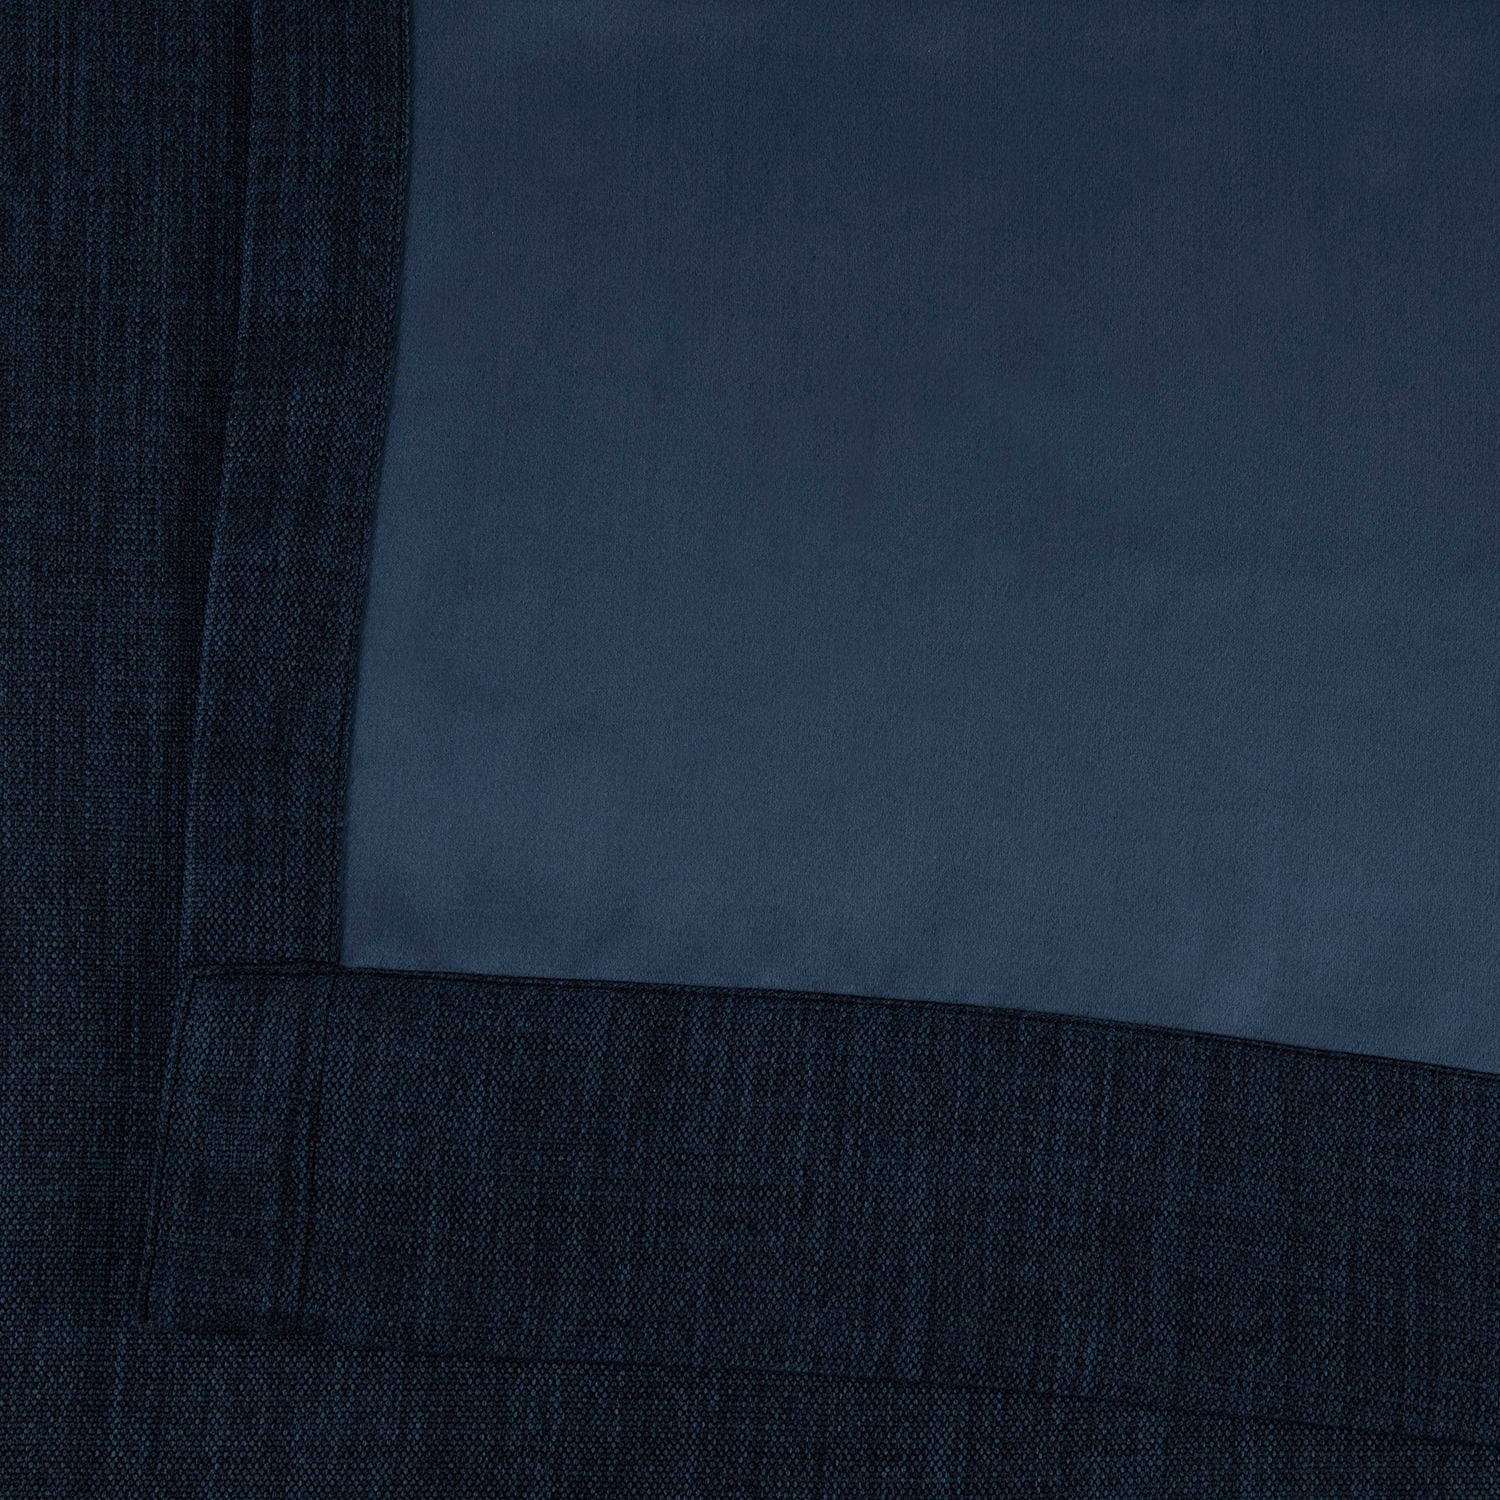 Indigo Faux Linen Extra Wide Blackout Room Darkening Curtain